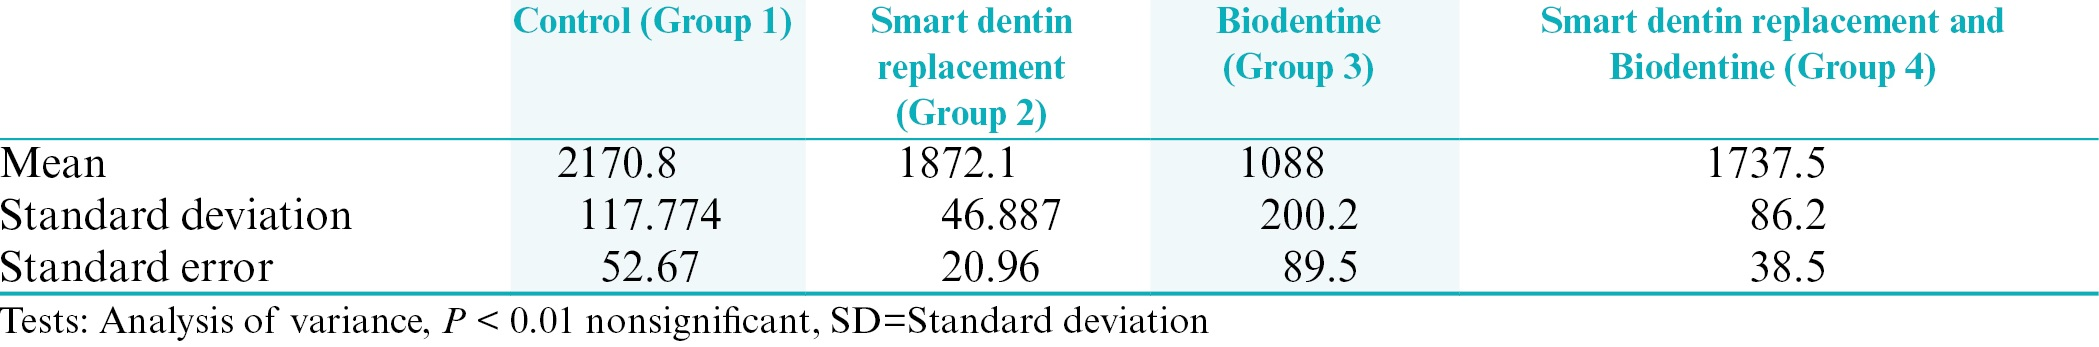 Table 1: Mean and standard deviation values for fracture strength (Mpa)